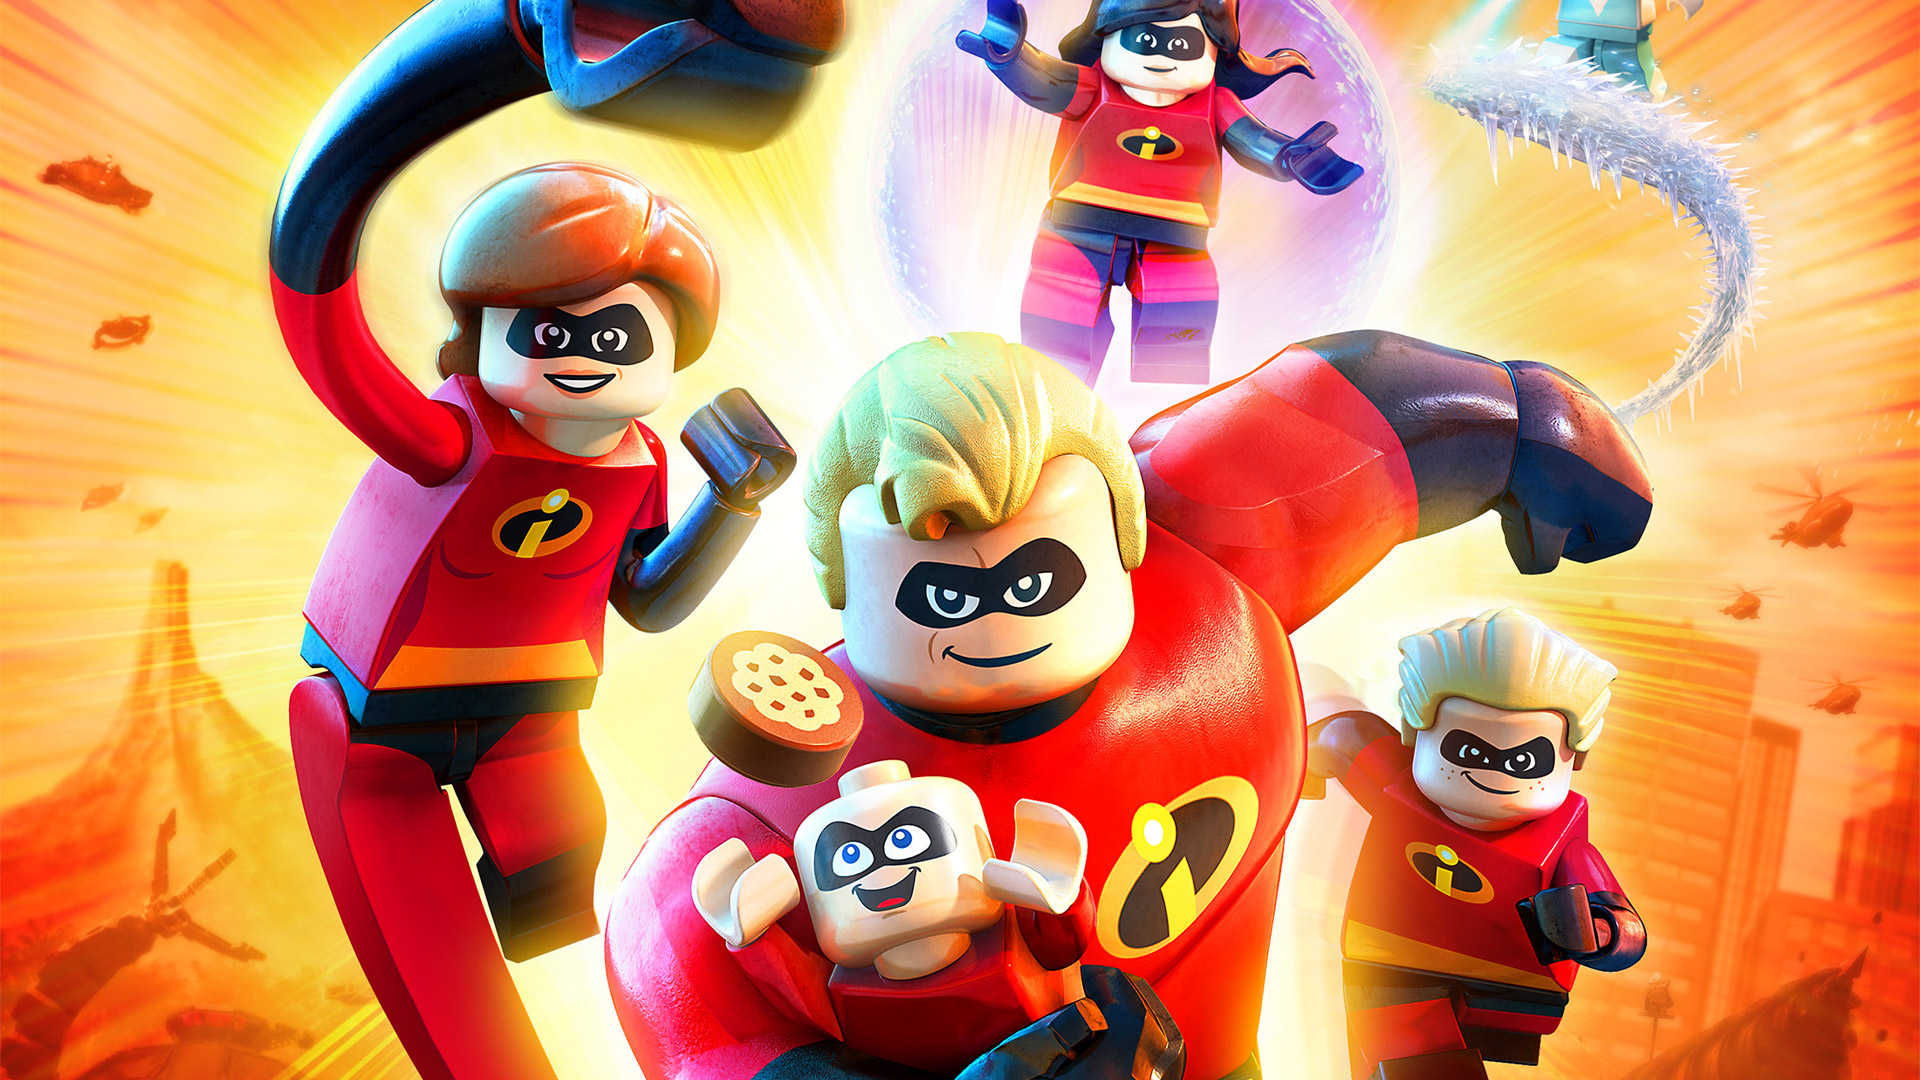 Free Lego The Incredibles Wallpaper in 1920x1080